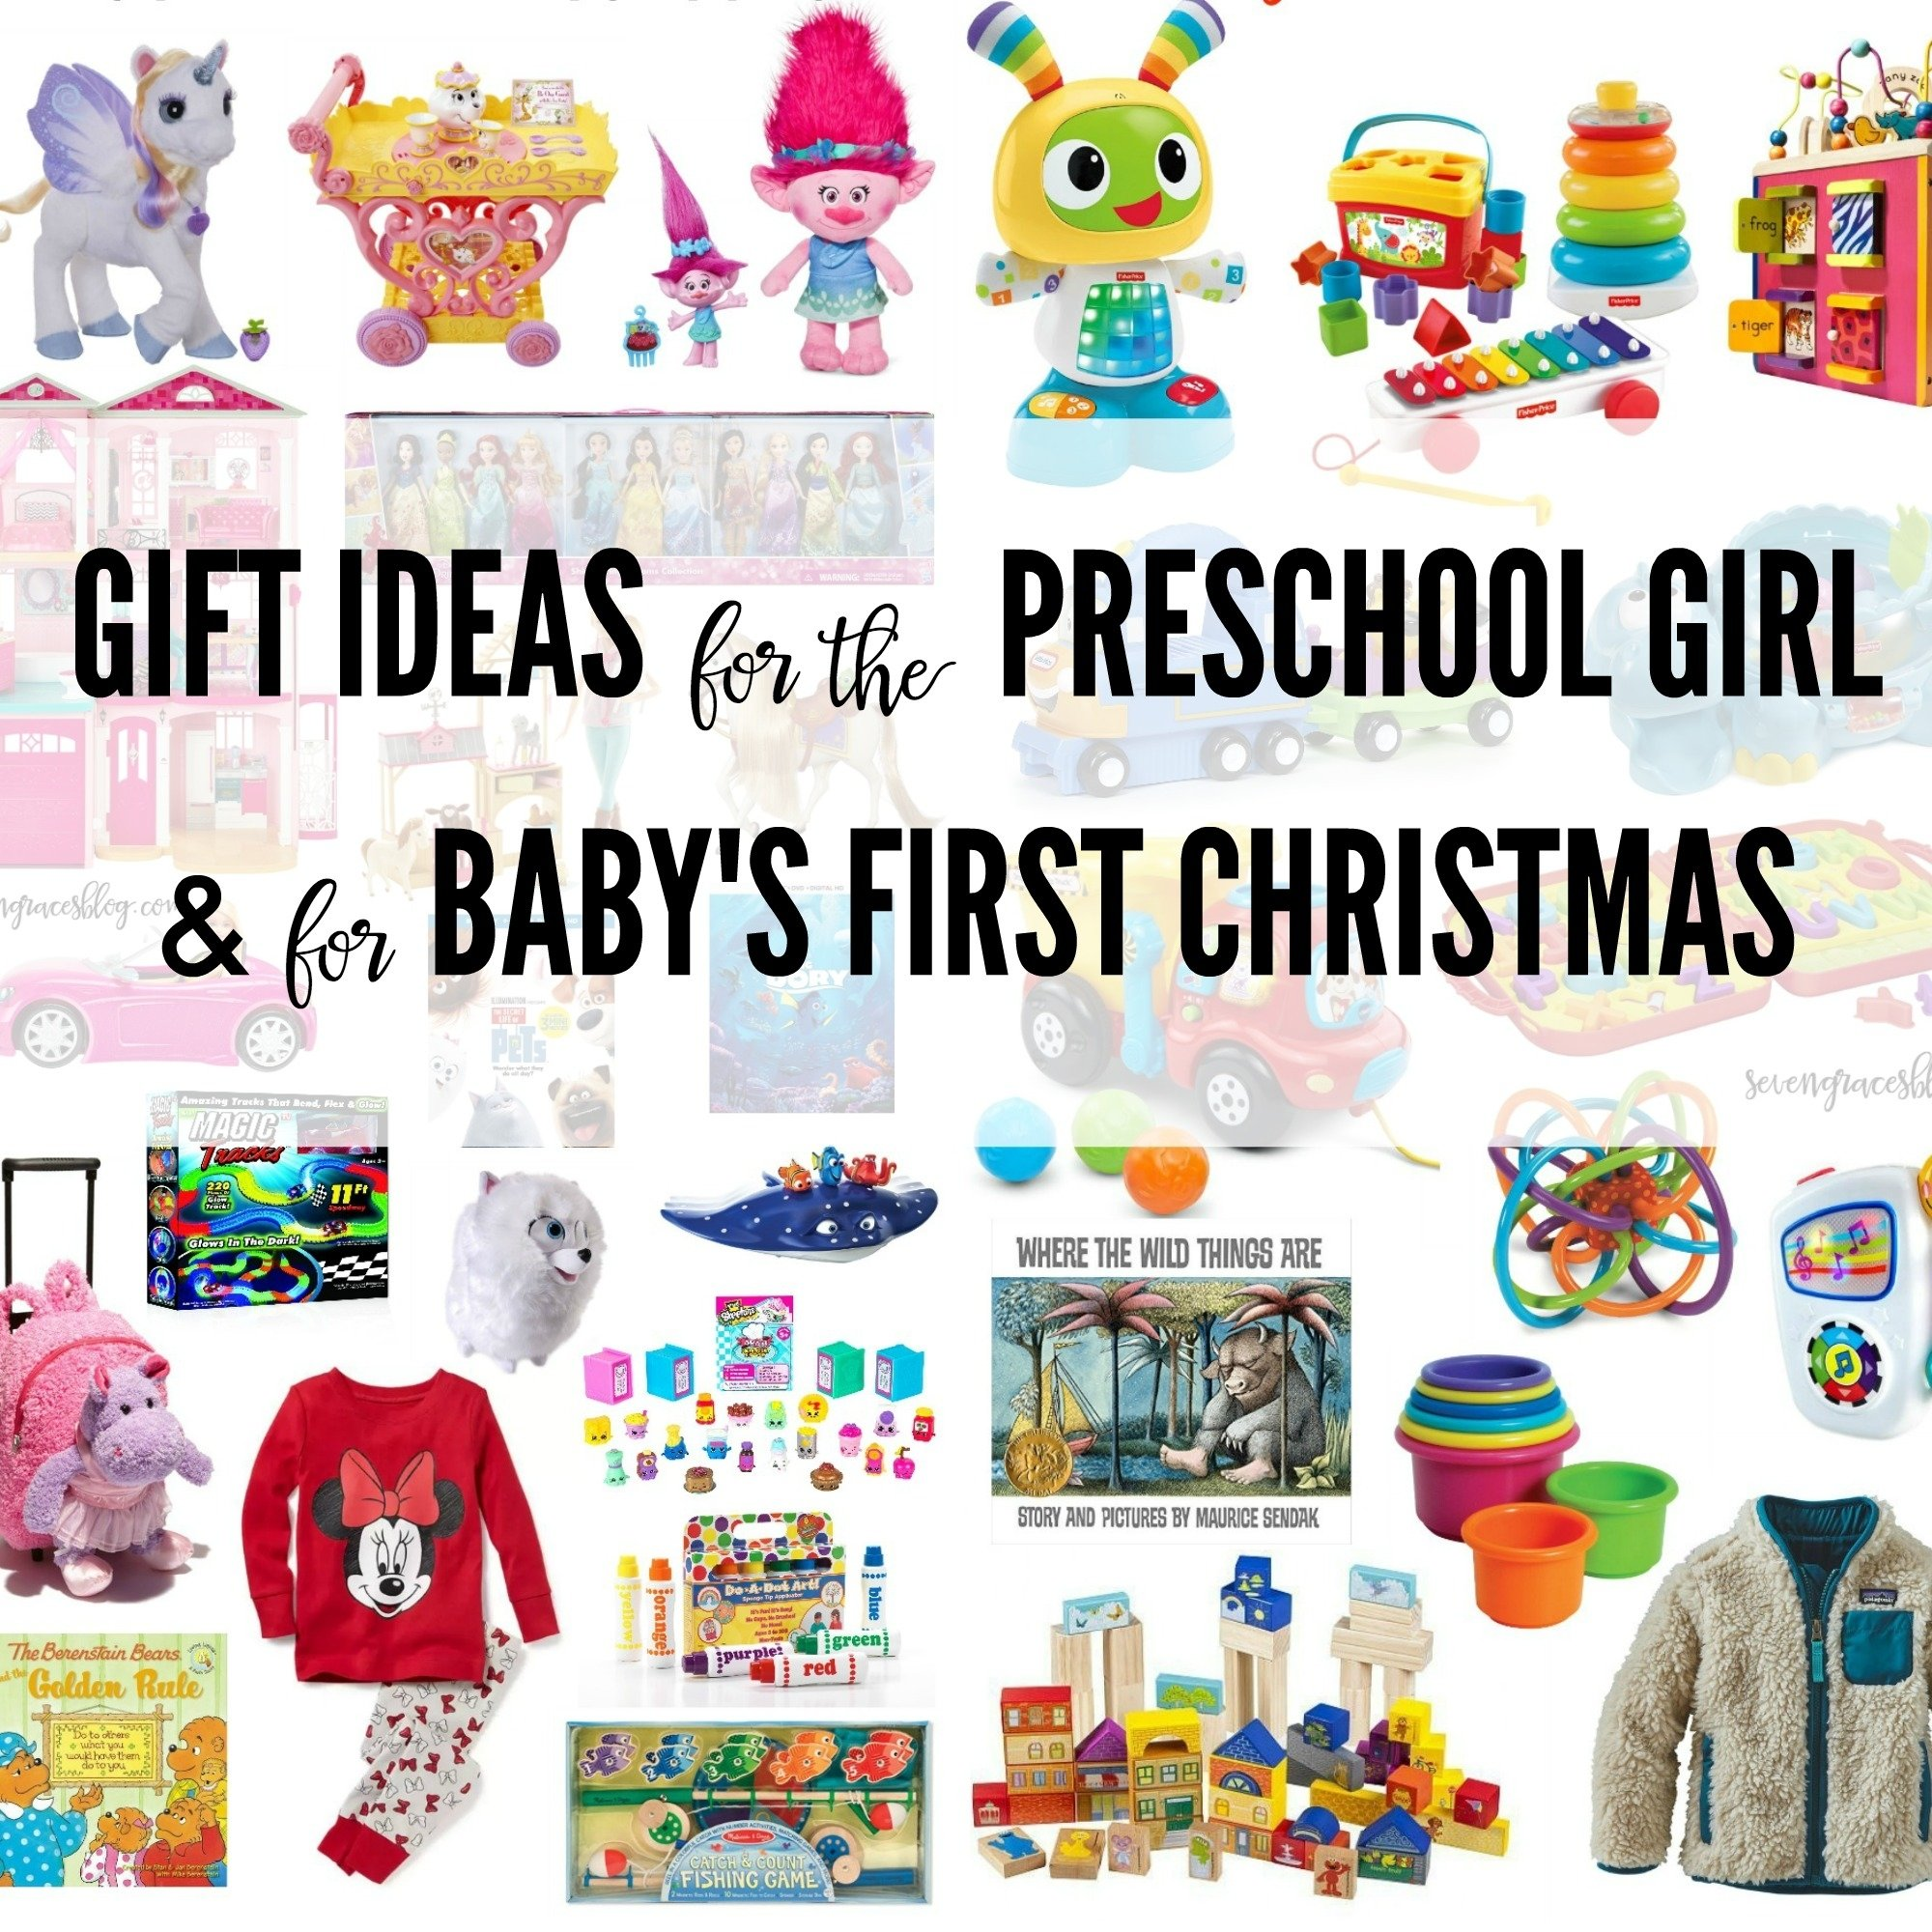 10 Ideal Baby First Christmas Gift Ideas ideas for the preschool girl and for babys first christmas 2020